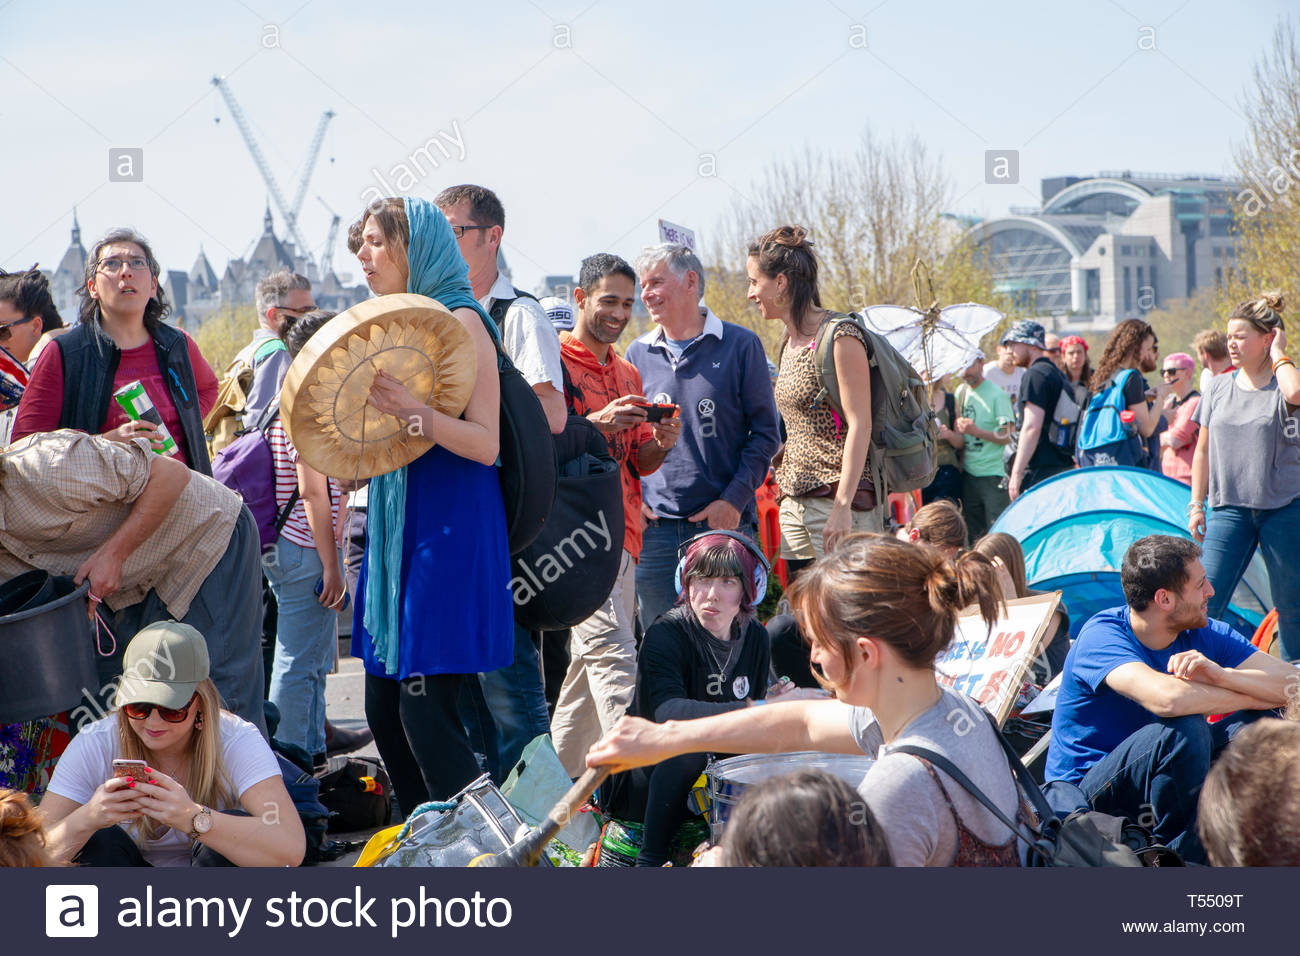 WATERLOO BRIDGE, LONDON, APRIL 19th, 2019: Artwork by Extinction Rebellion supporters expresses concern about global climate change on 19th April 2019 - Stock Image